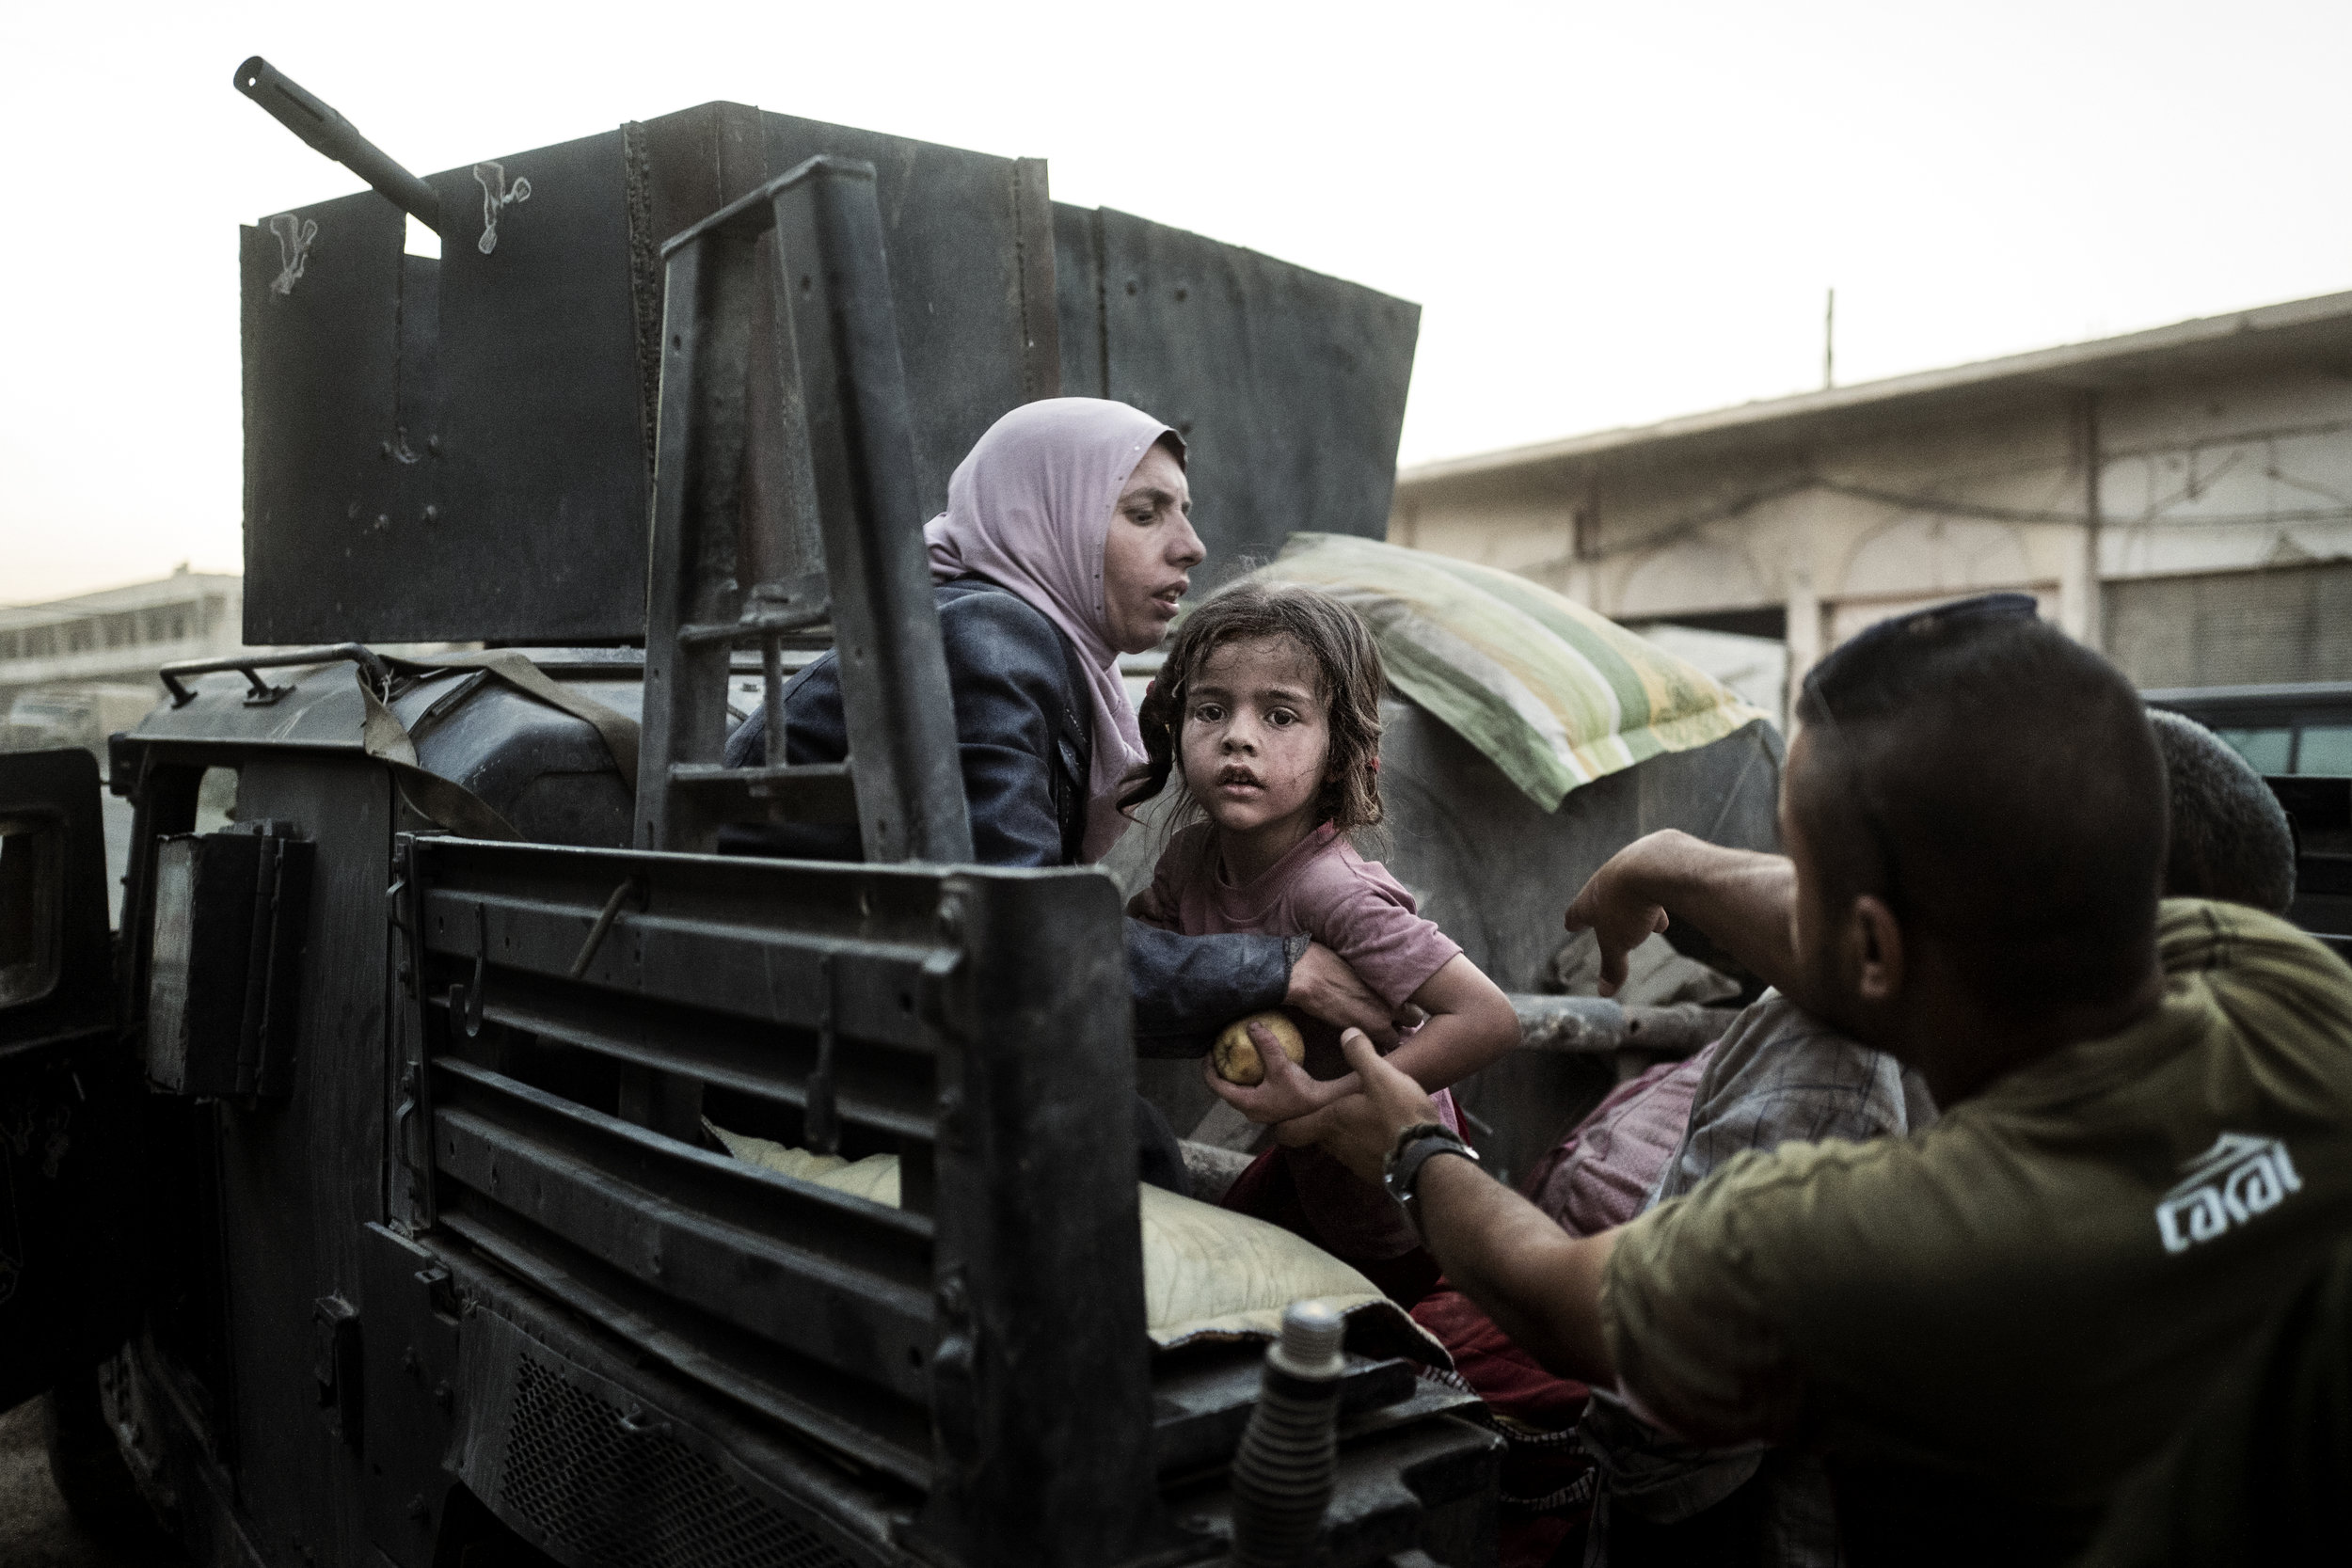 When they are not occupied with fighting ISIS the Iraqi soldiers try to help the many civilians trapped inside Mosul by driving them to the safe parts of the city.